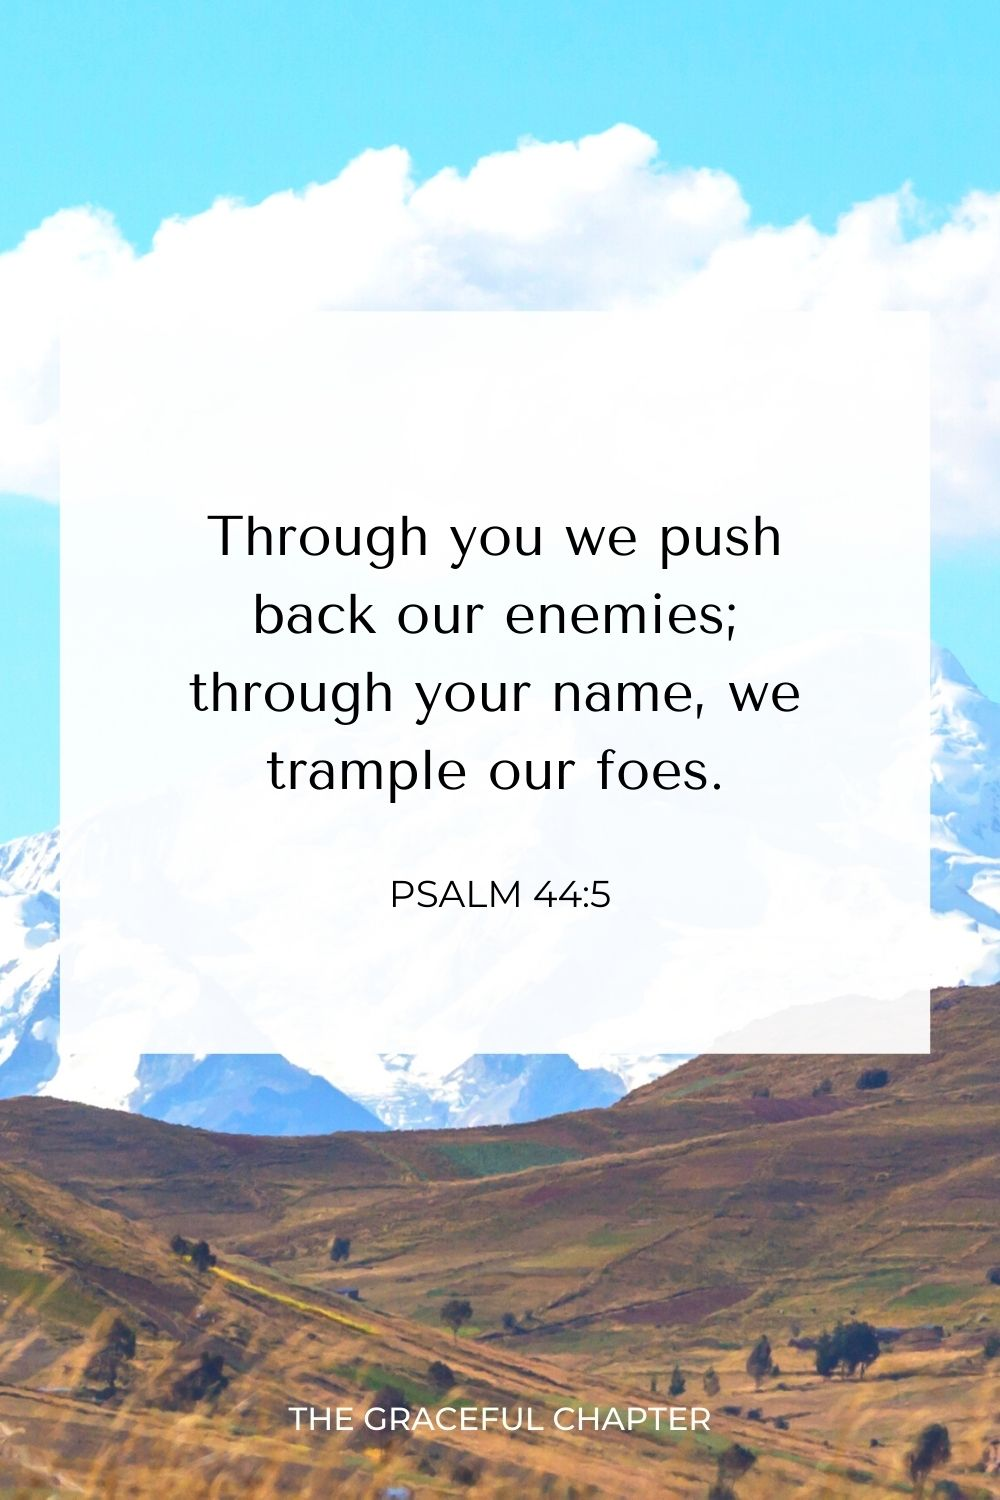 Through you we push back our enemies; through your name we trample our foes. Psalm 44:5